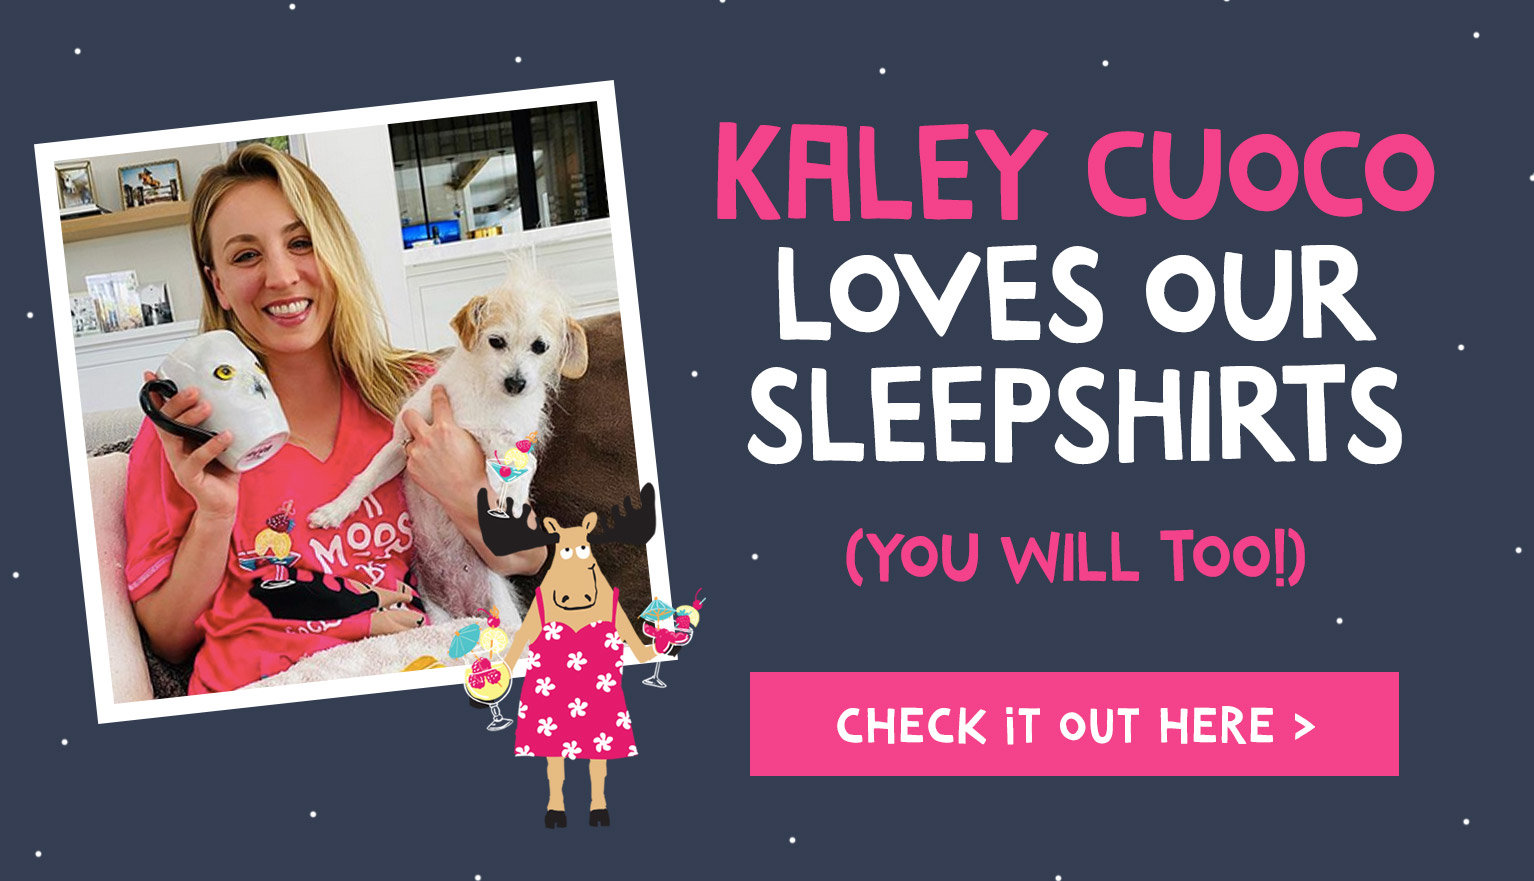 Kaley Cuoco loves our sleepshirts